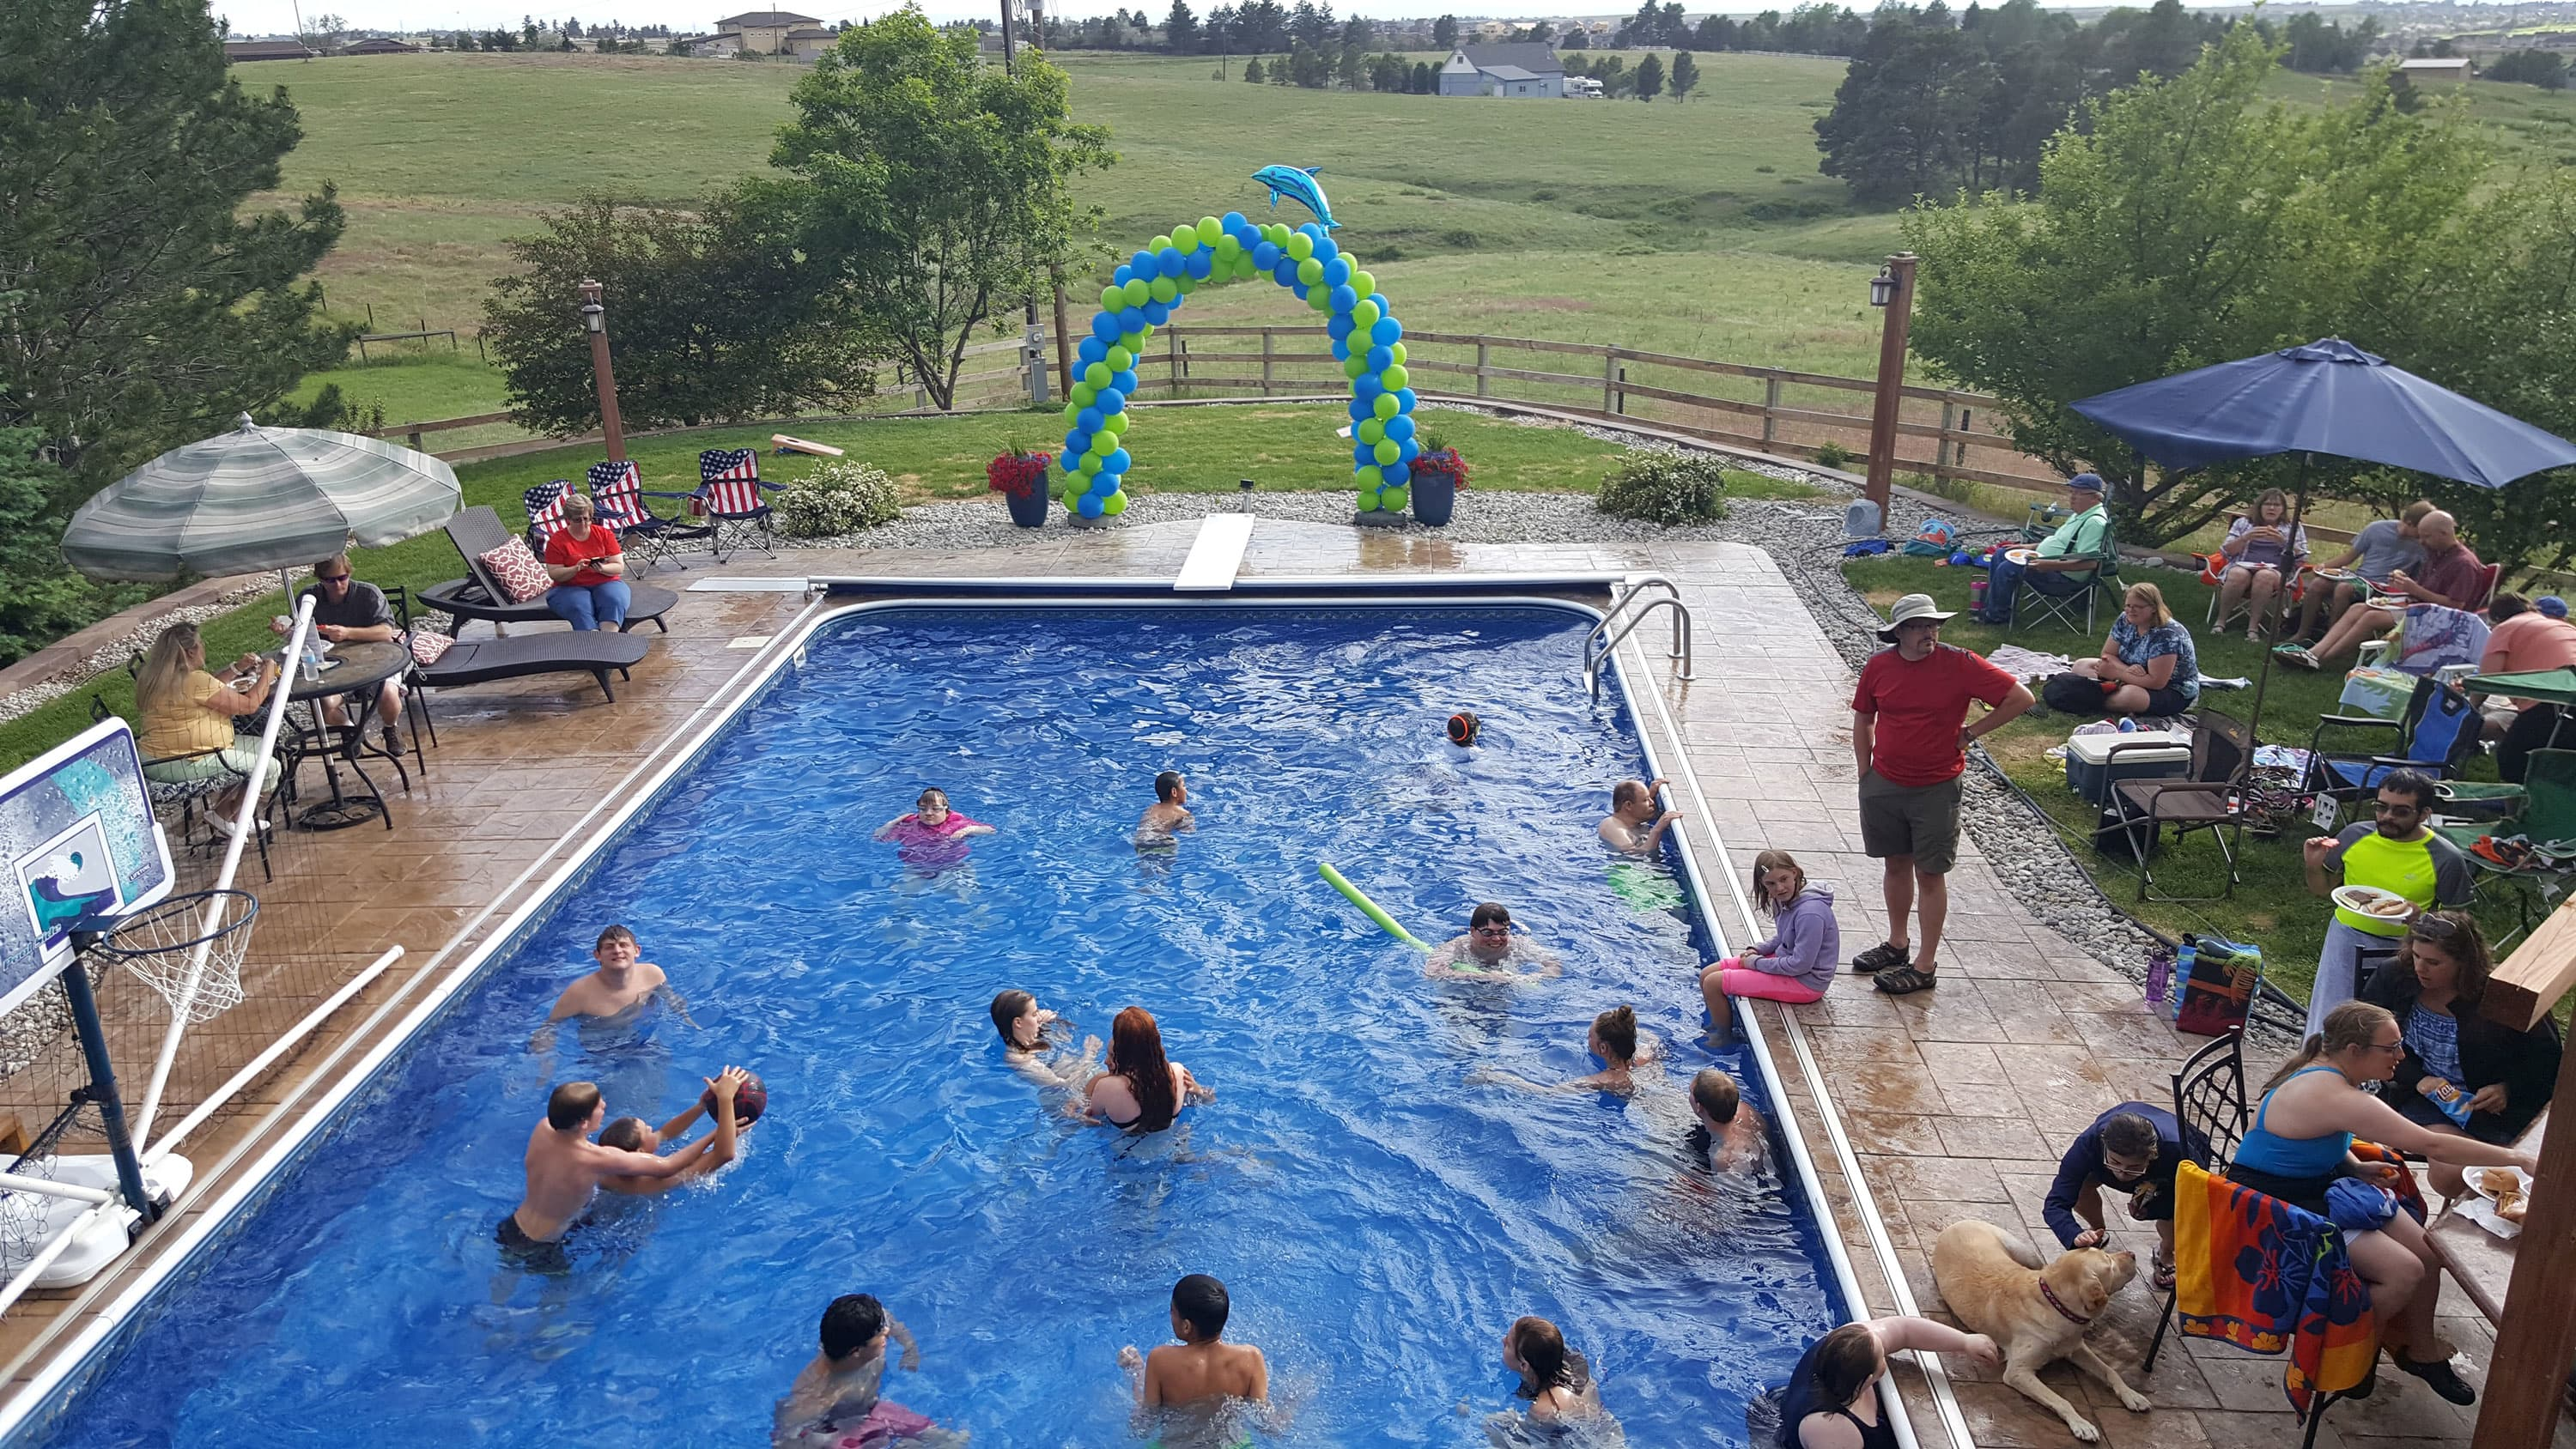 Rent out your pool and swim in profits? Check your insurance before diving in